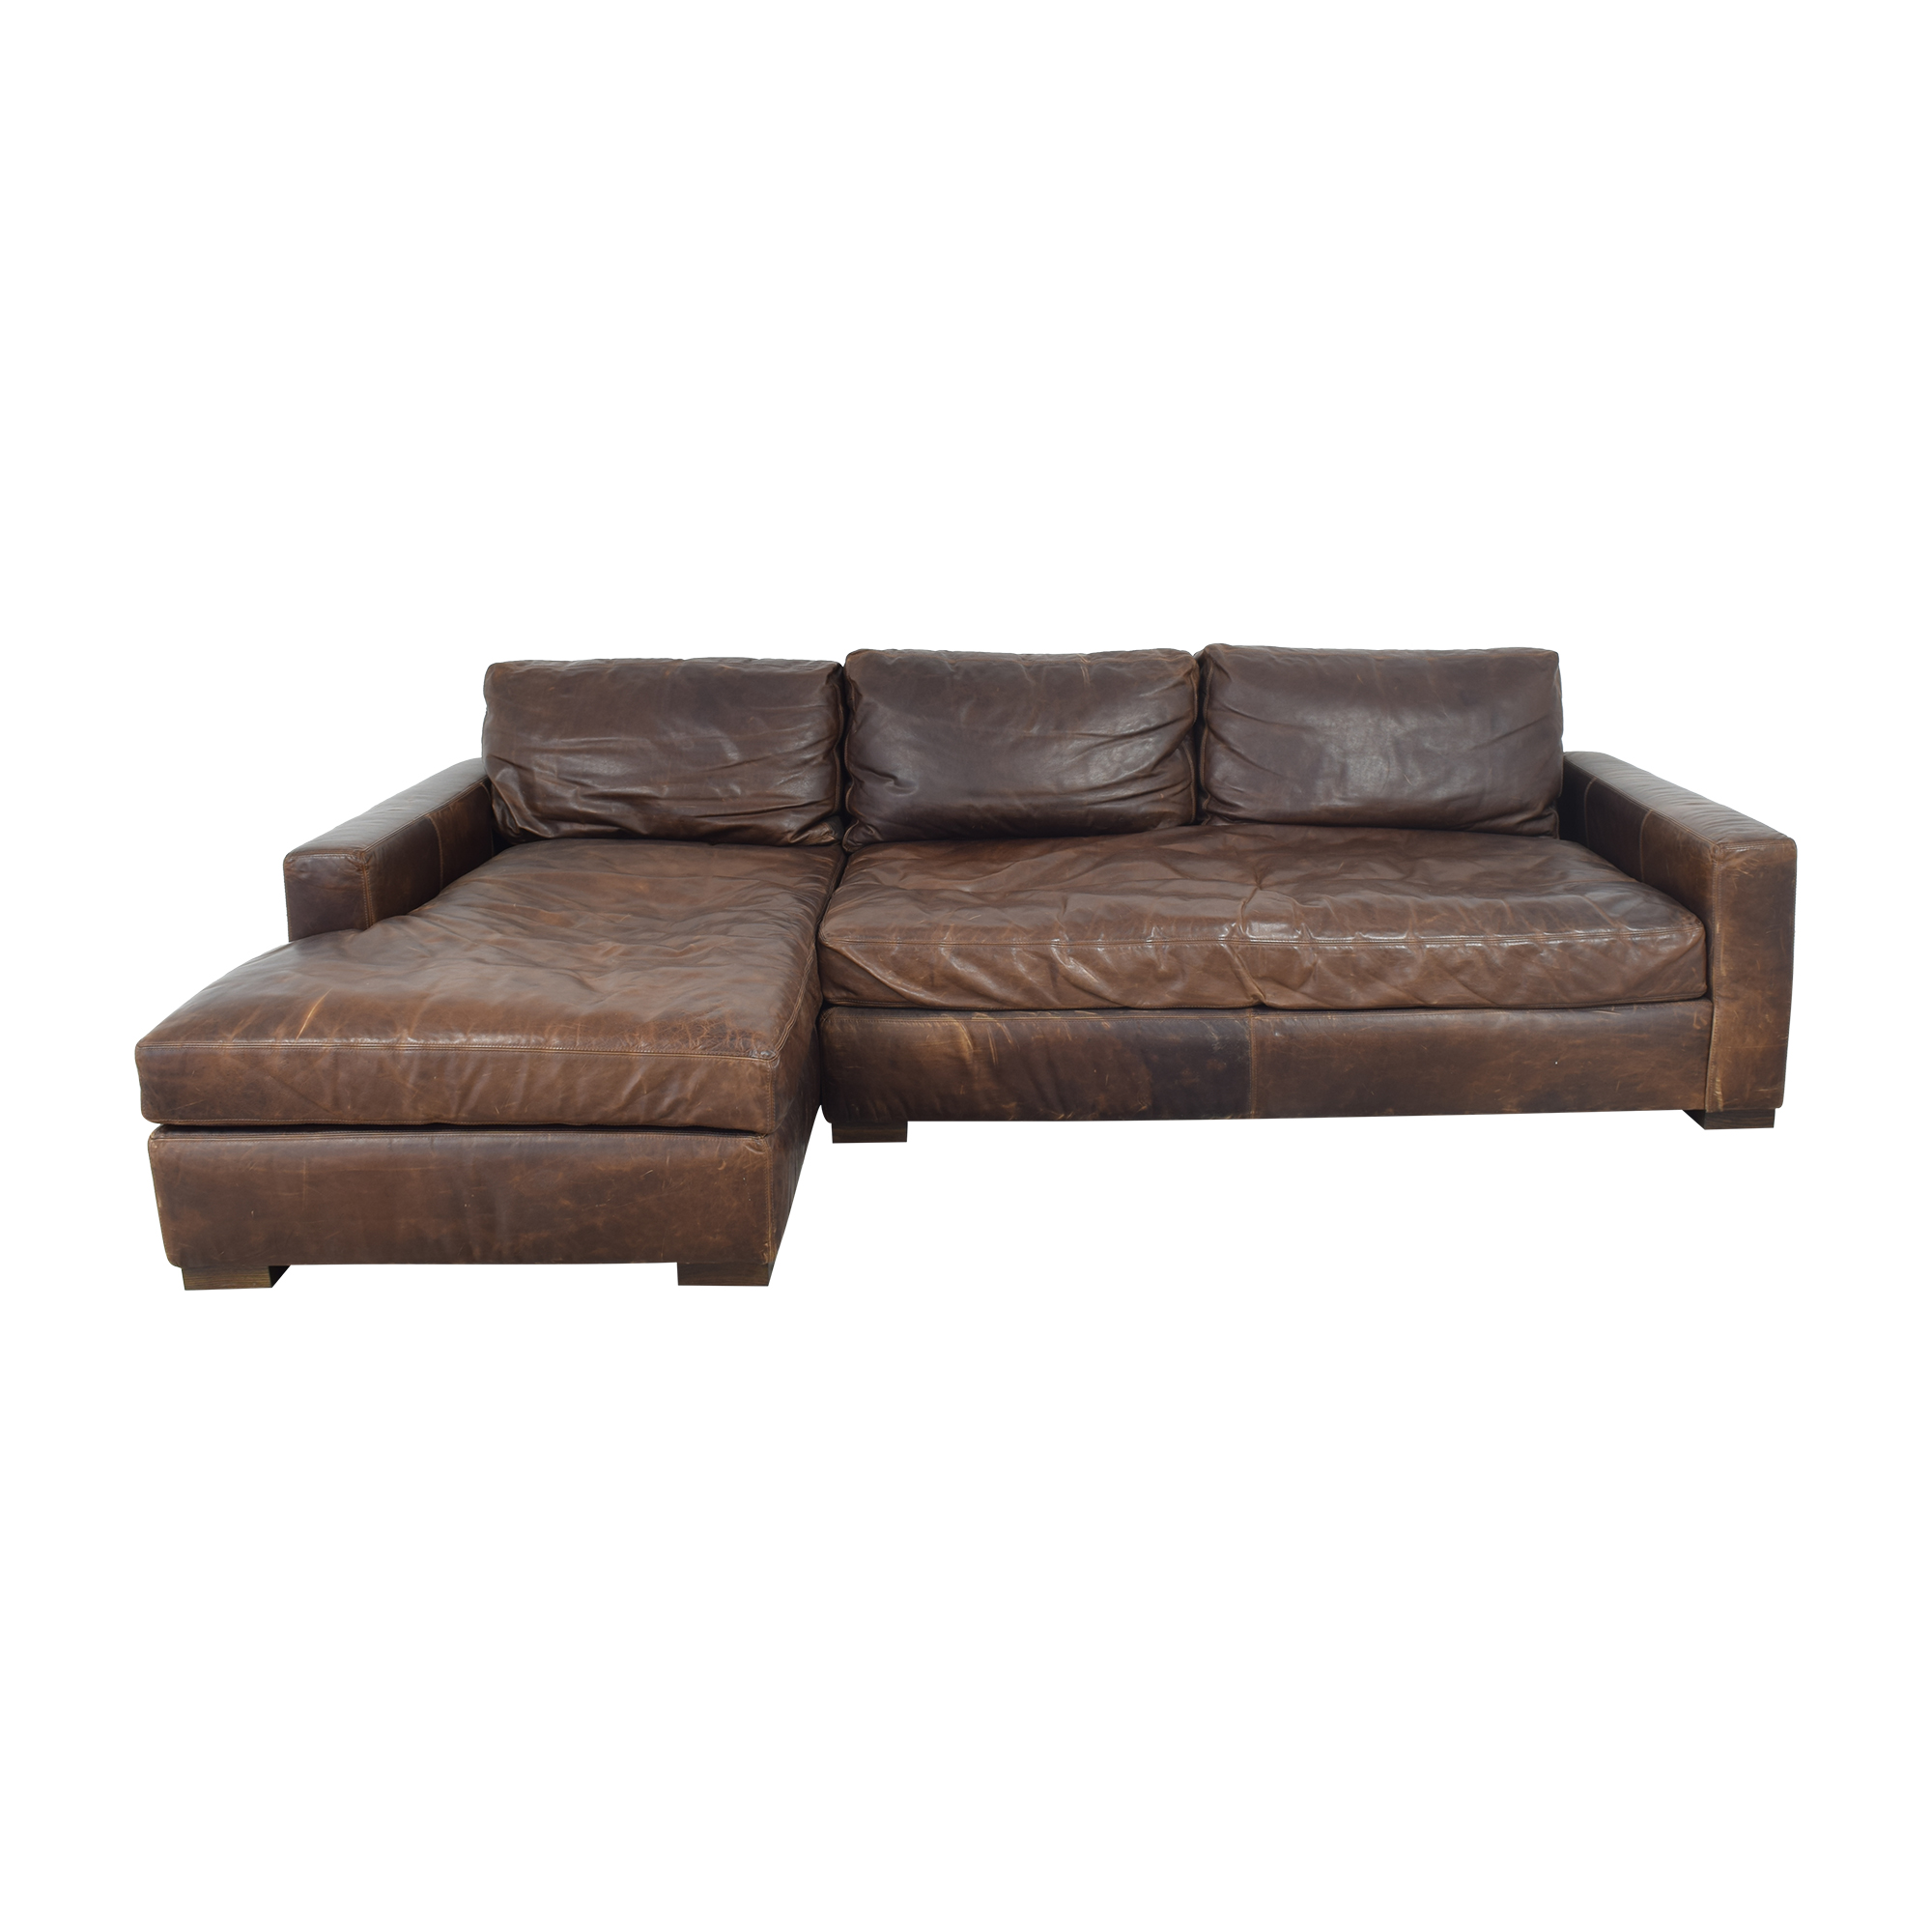 Restoration Hardware Restoration Hardware Maxwell Chaise Bench-Seat Sectional pa